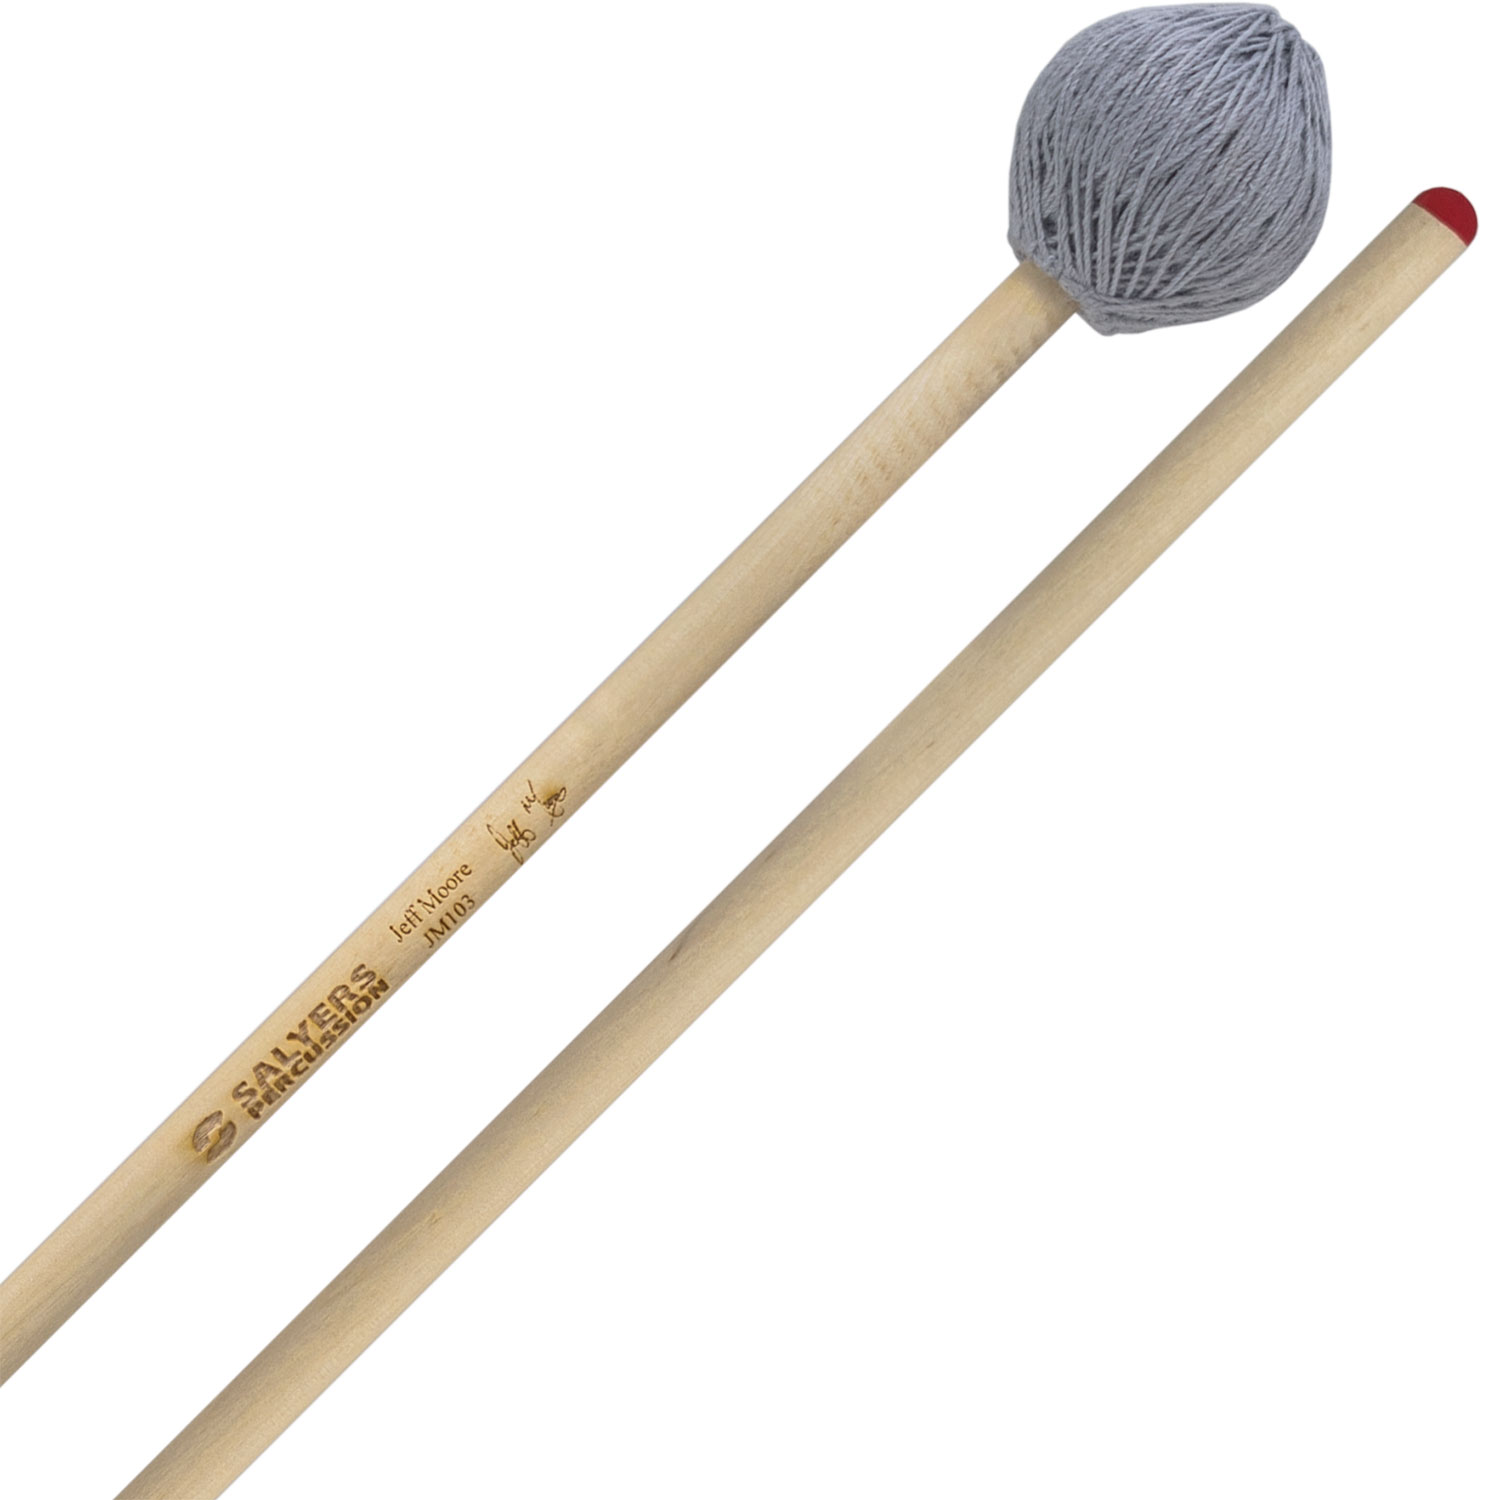 Salyers Percussion Jeff Moore Signature Medium Hard Marimba Mallets with Birch Handles